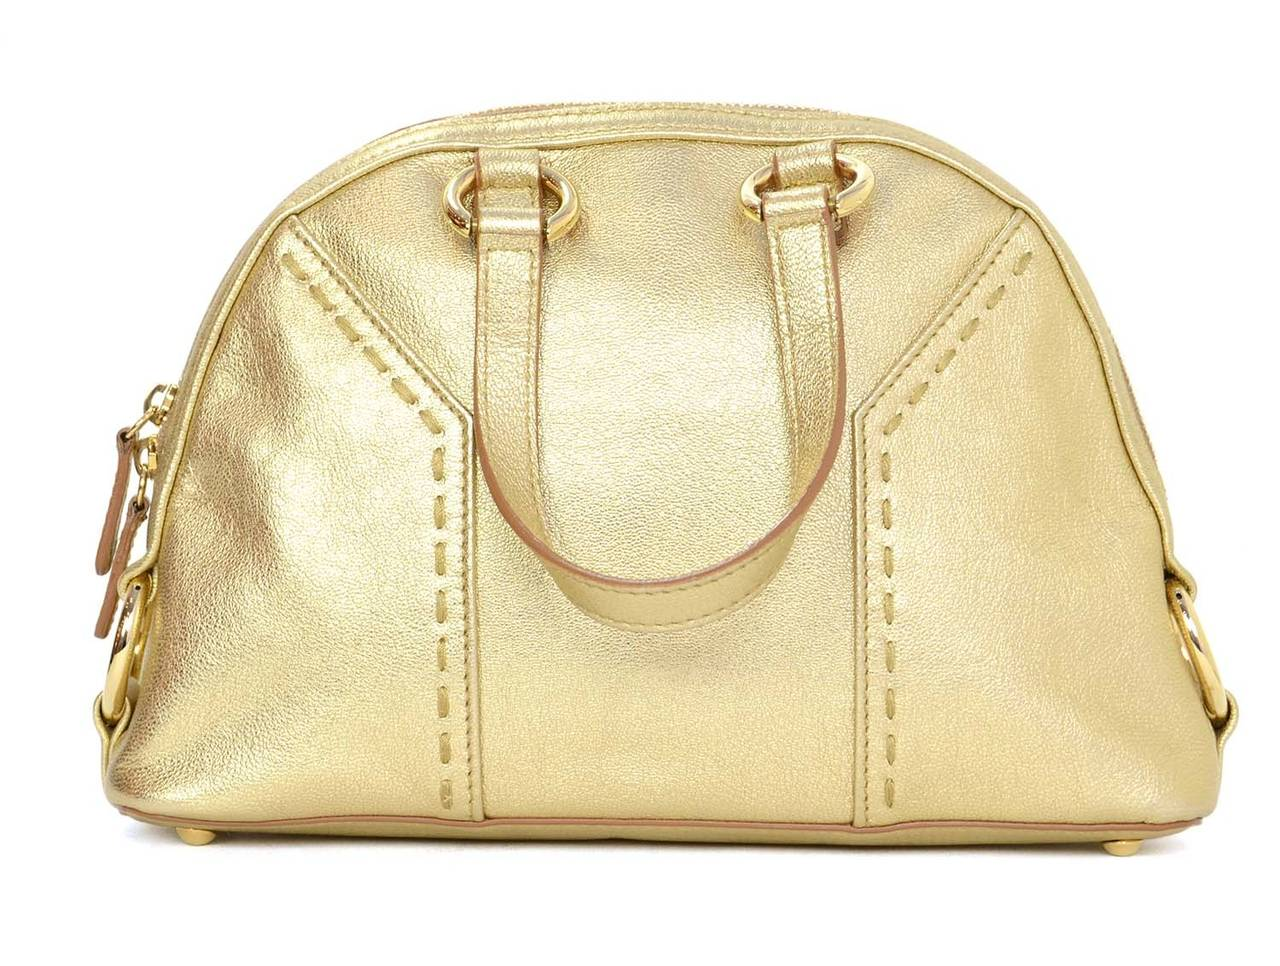 Yves Saint Laurent Ysl 2008 Gold Leather Micro Muse Bag At